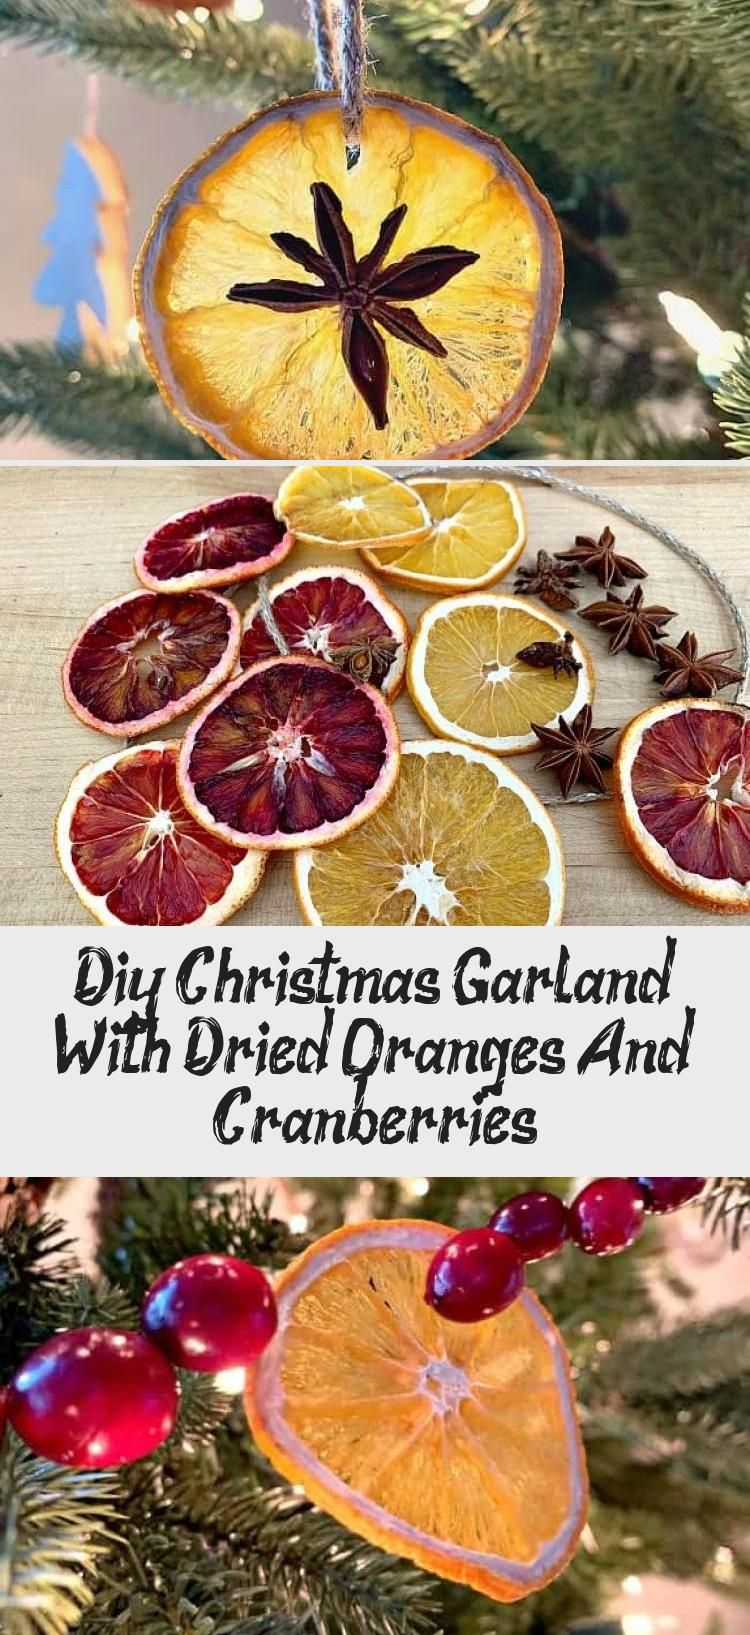 Diy Christmas Garland With Dried Oranges And Cranberries